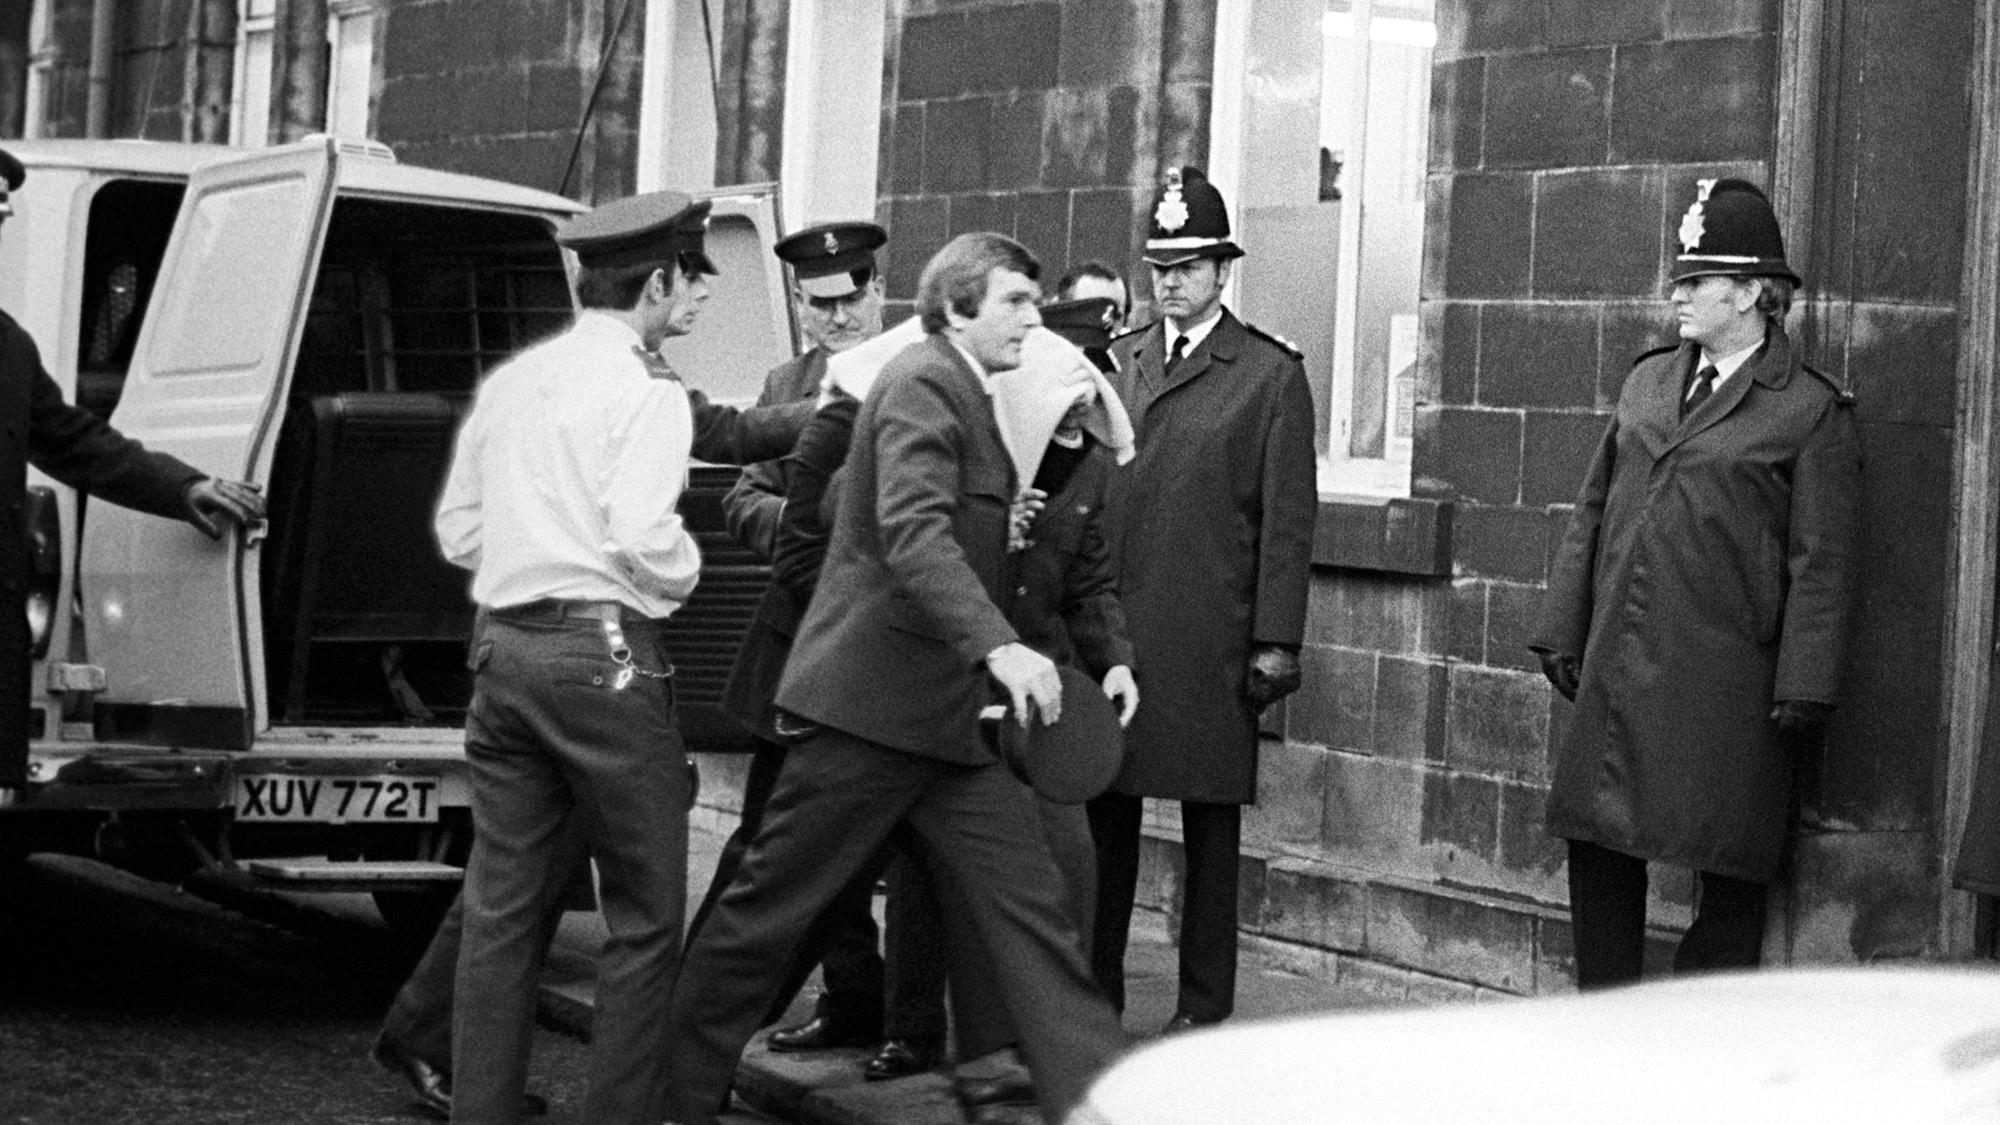 Yorkshire Ripper, Britain's most notorious killer of 20th century, dies at 74